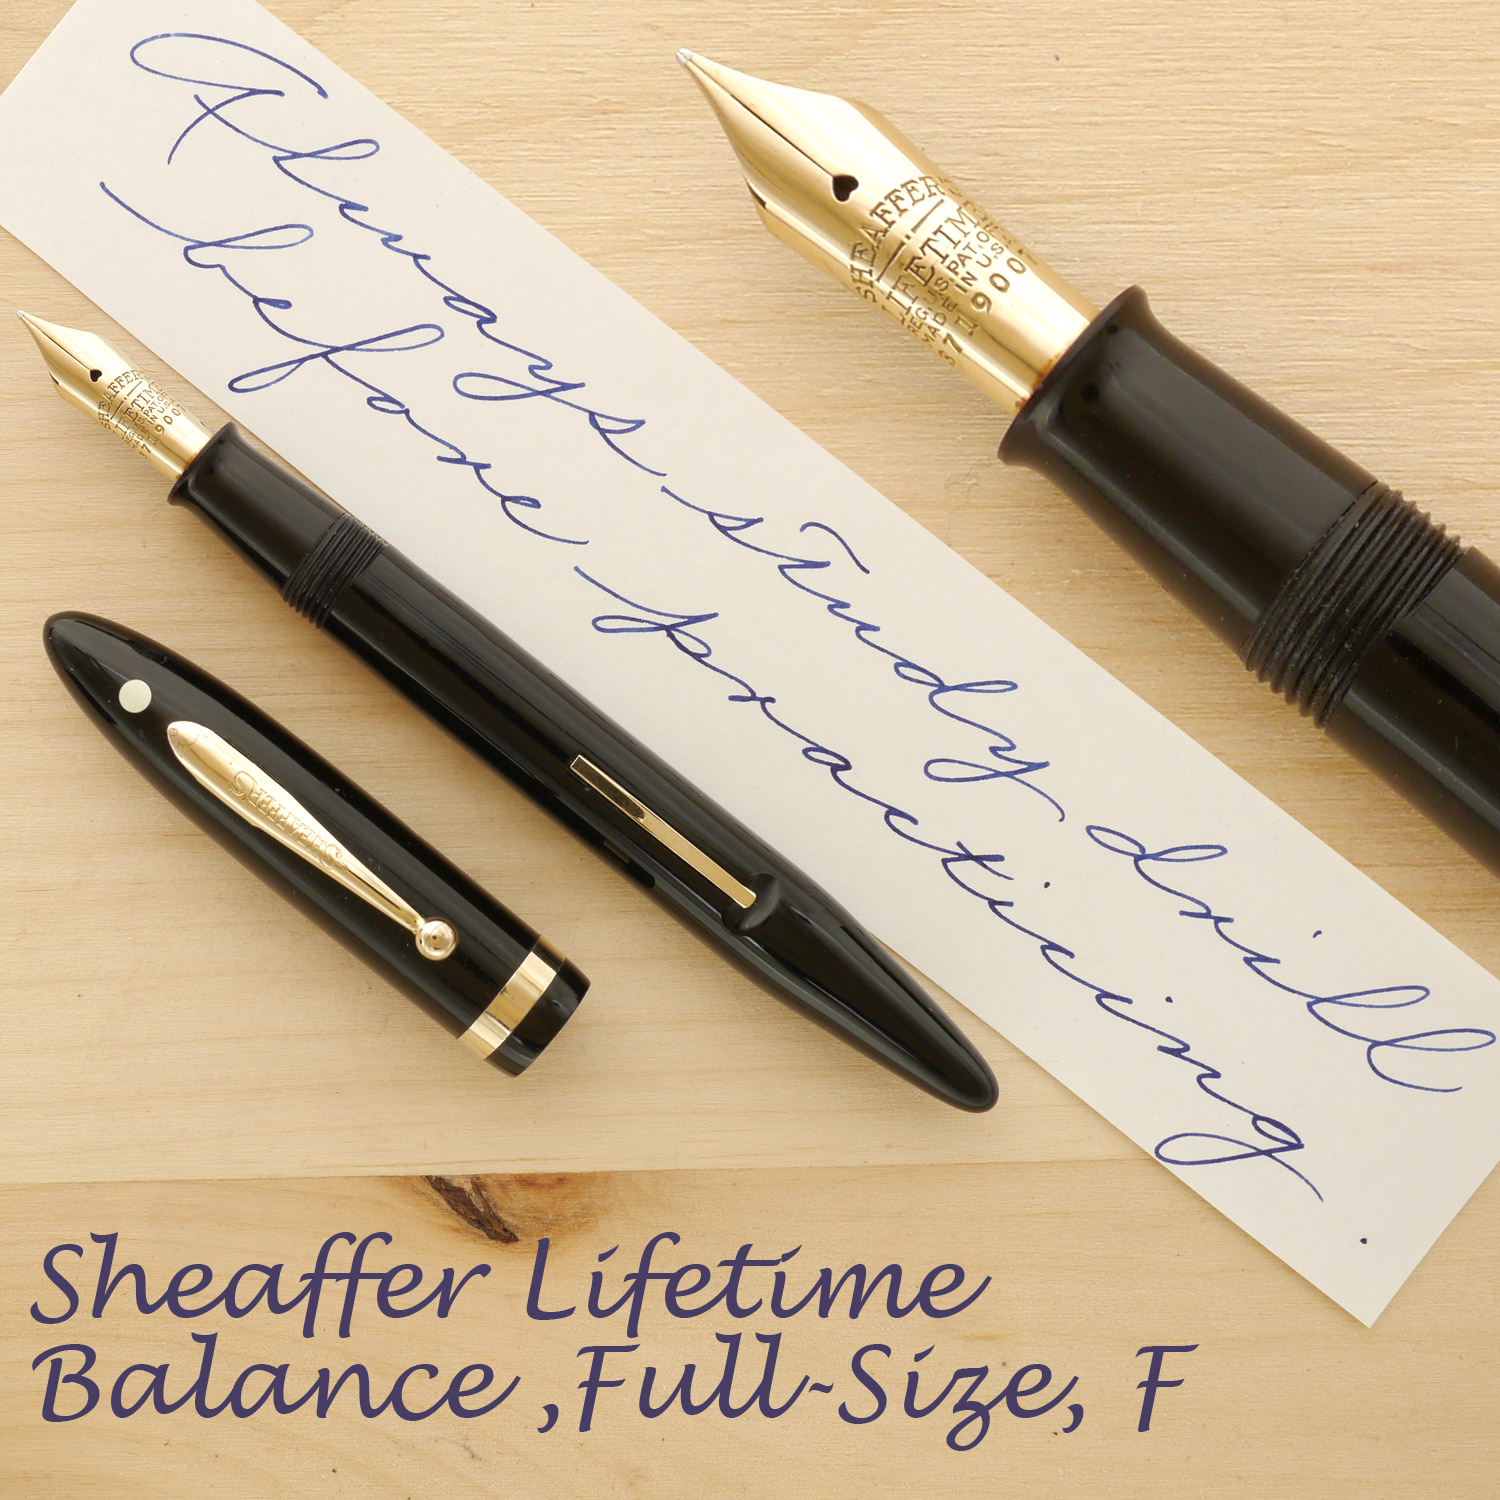 Sheaffer Lifetime Balance, Full-Size, Black, F, with the cap off